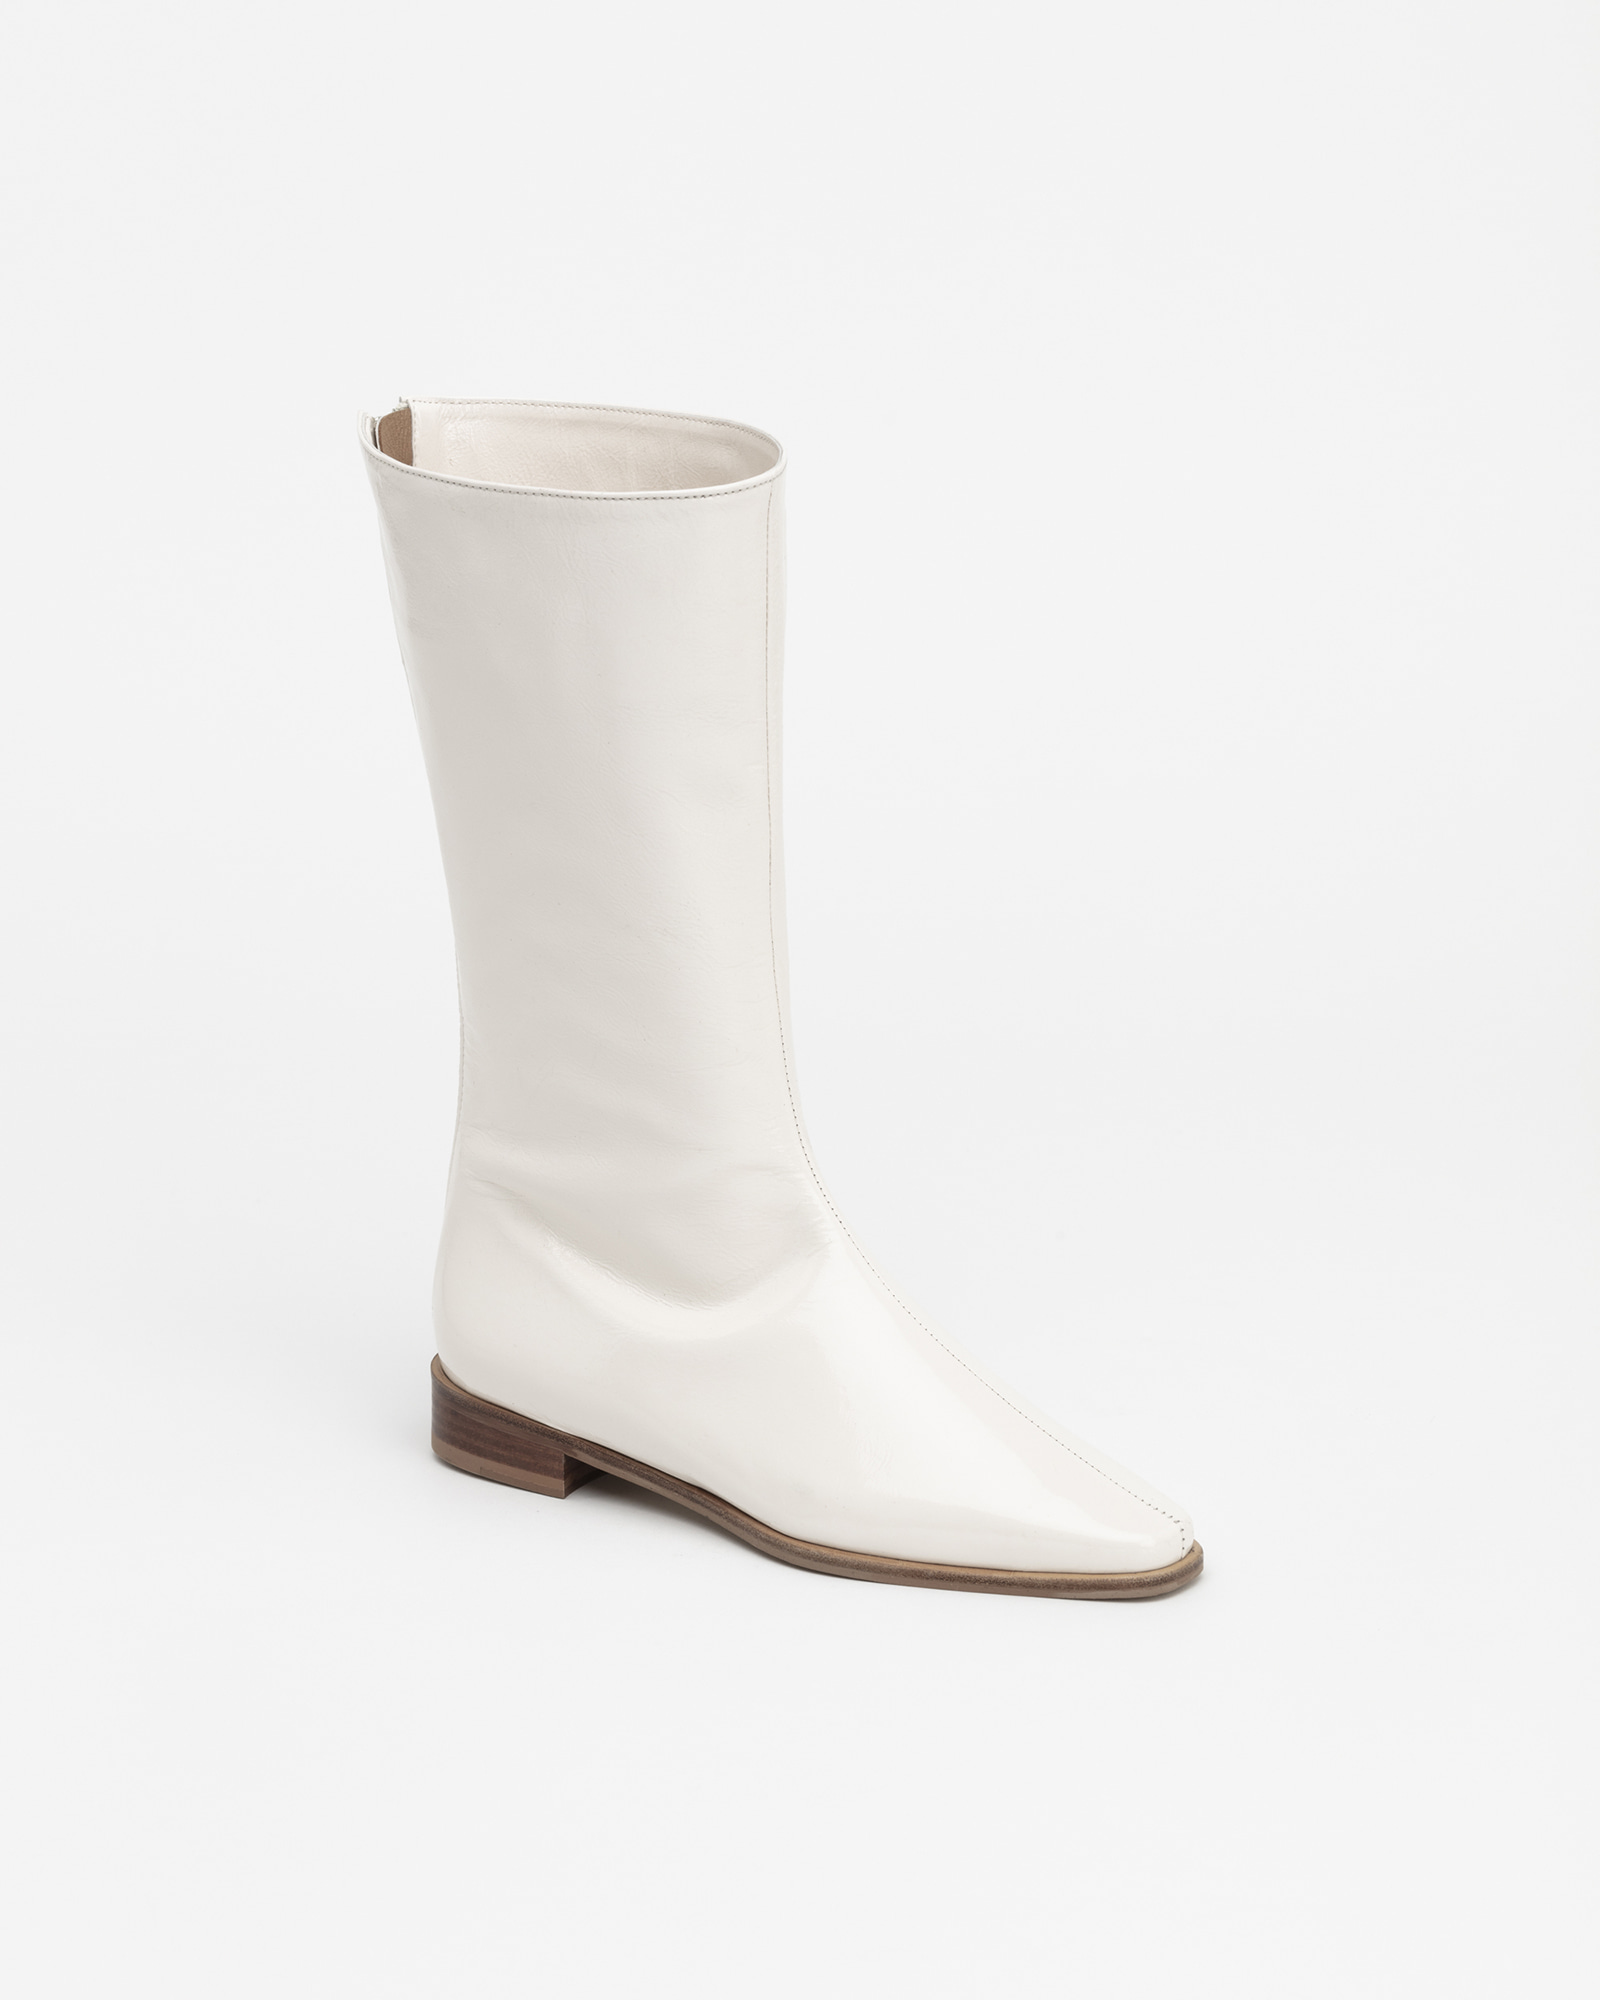 Resin Half Boots in Wrinkled White Patent